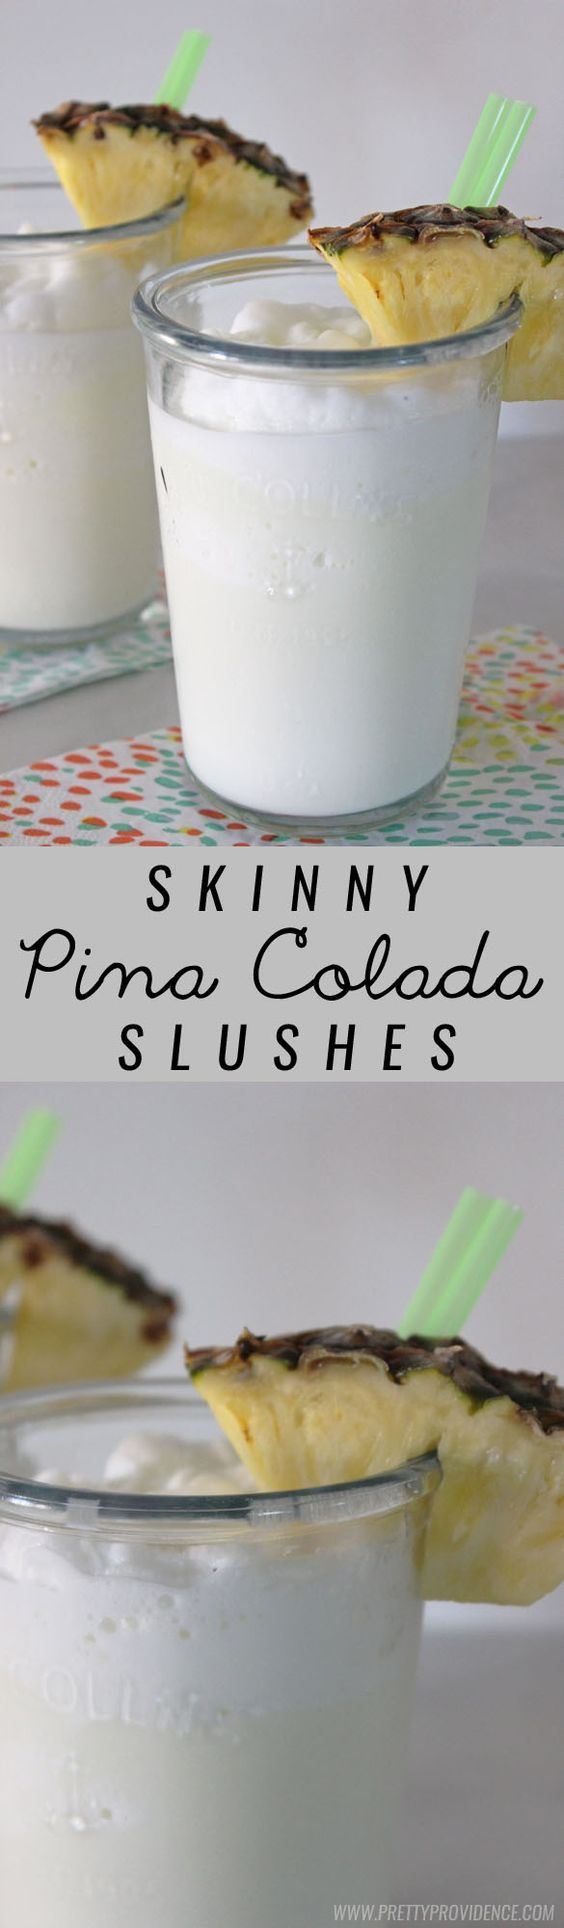 These skinny virgin pina colada slushes are amazing! A totally guilt free and refreshing summer drink!: